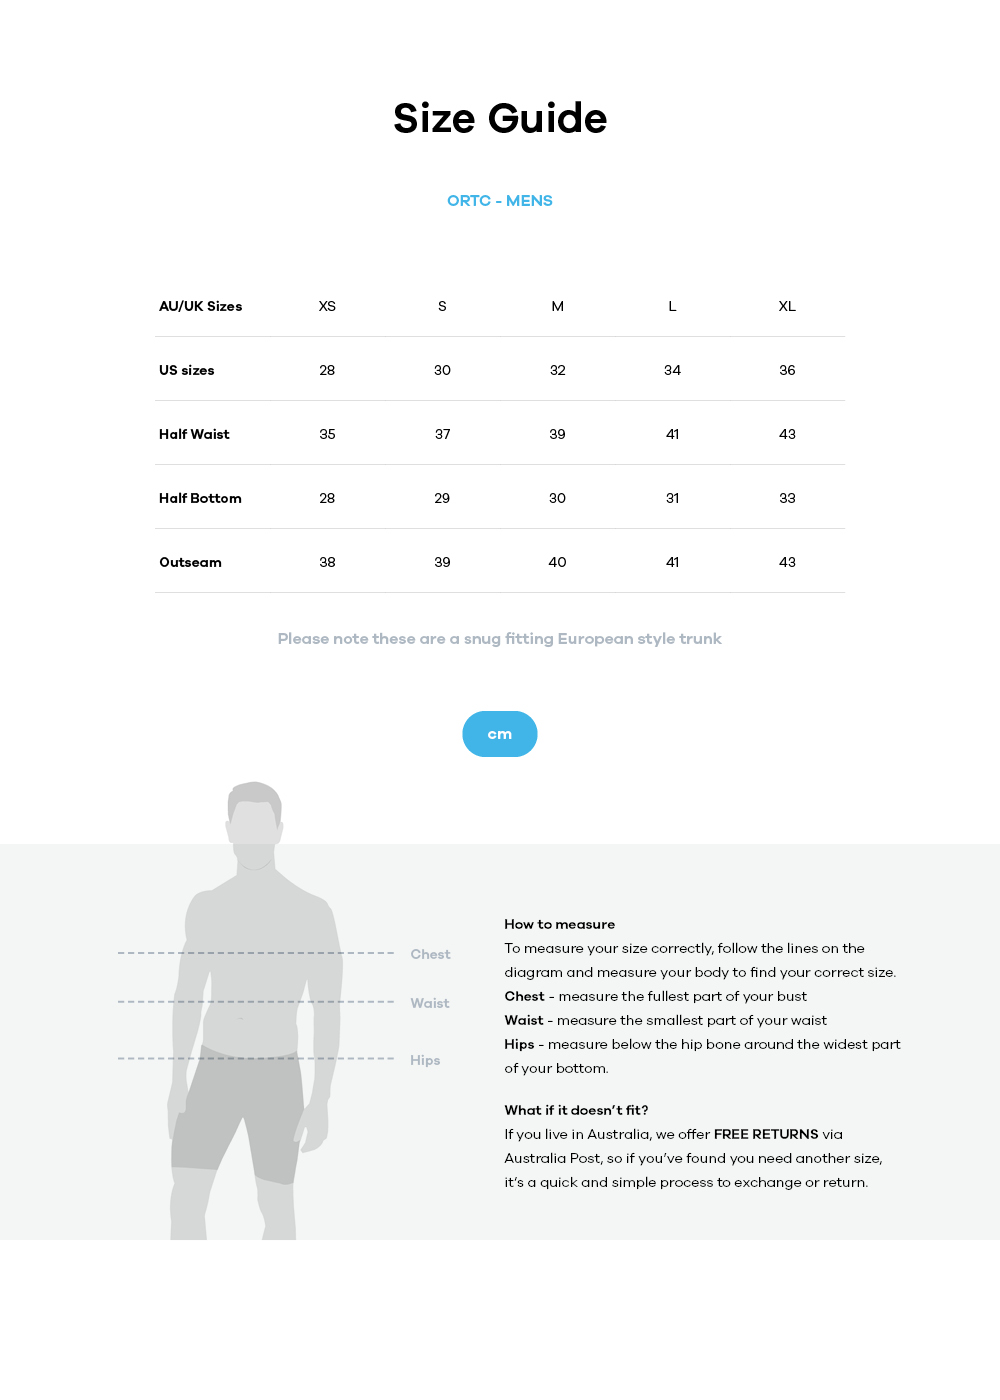 Ortc  size guide